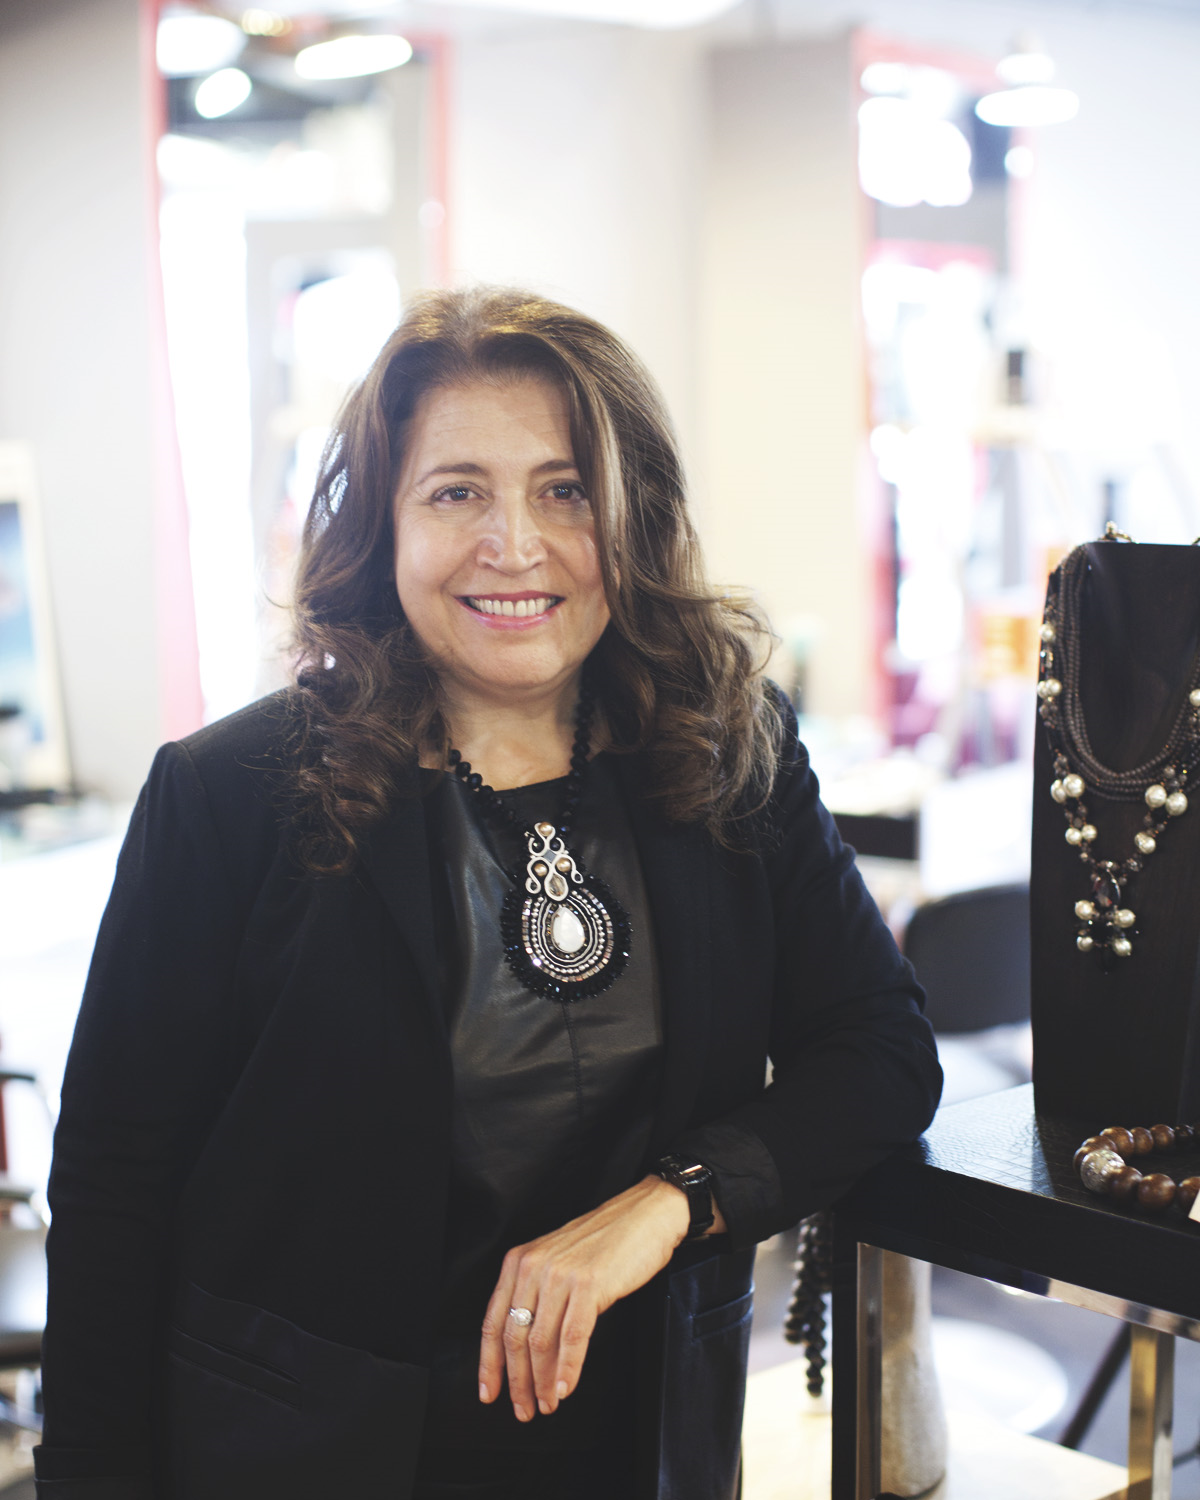 Fran Russo  Owner & Buyer  Fran has always had a passion for fashion and was thrilled to add some flair to the salon creating a mini boutique within RUSSO. She works hard behind the scenes and is still, after 8 years of buying, excited when clients leave with not only a beautiful new hairstyle but also a great new accessory.